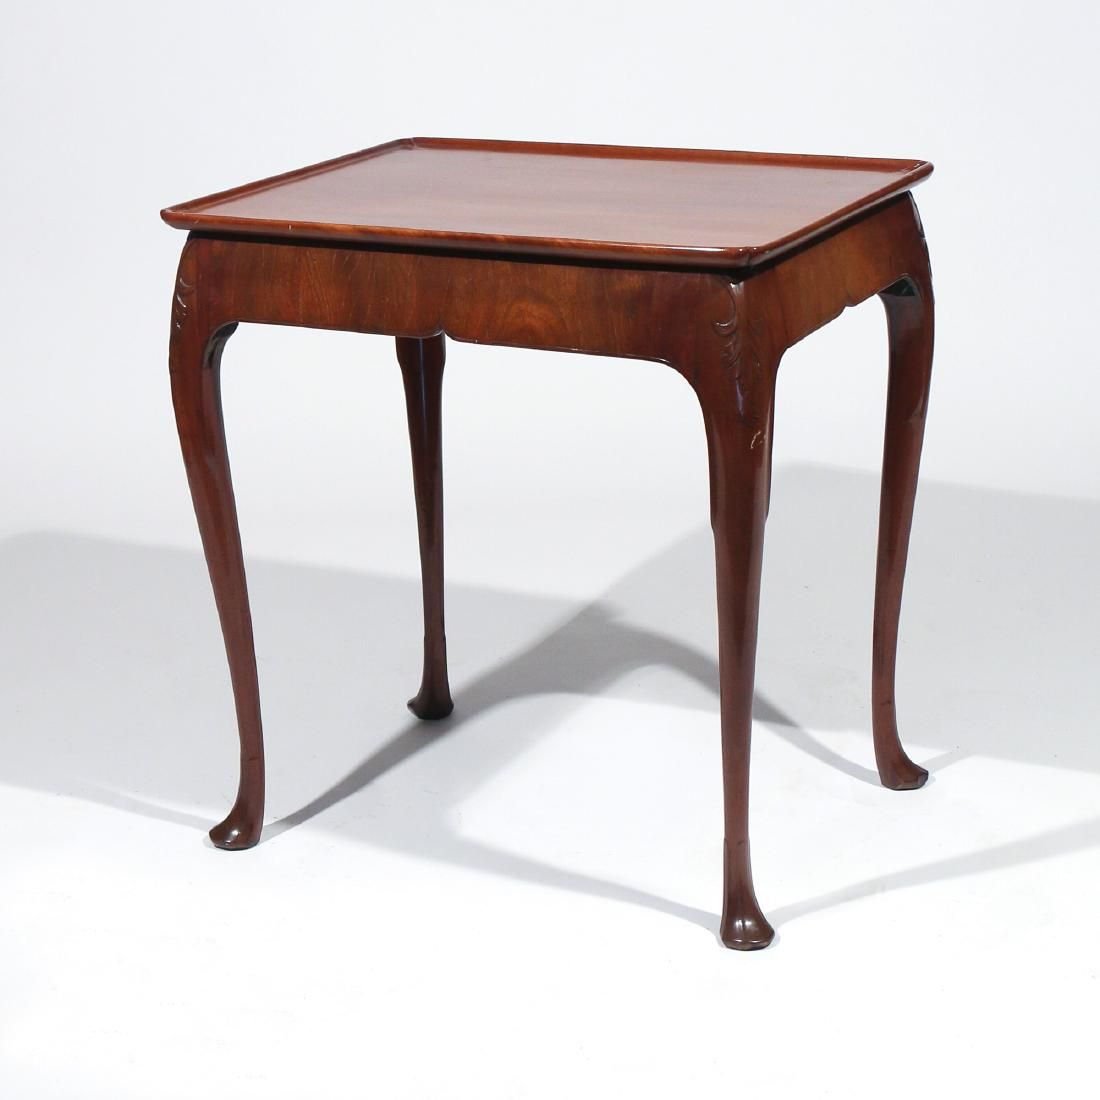 QUEEN ANNE-STYLE MAHOGANY SIDE TABLE